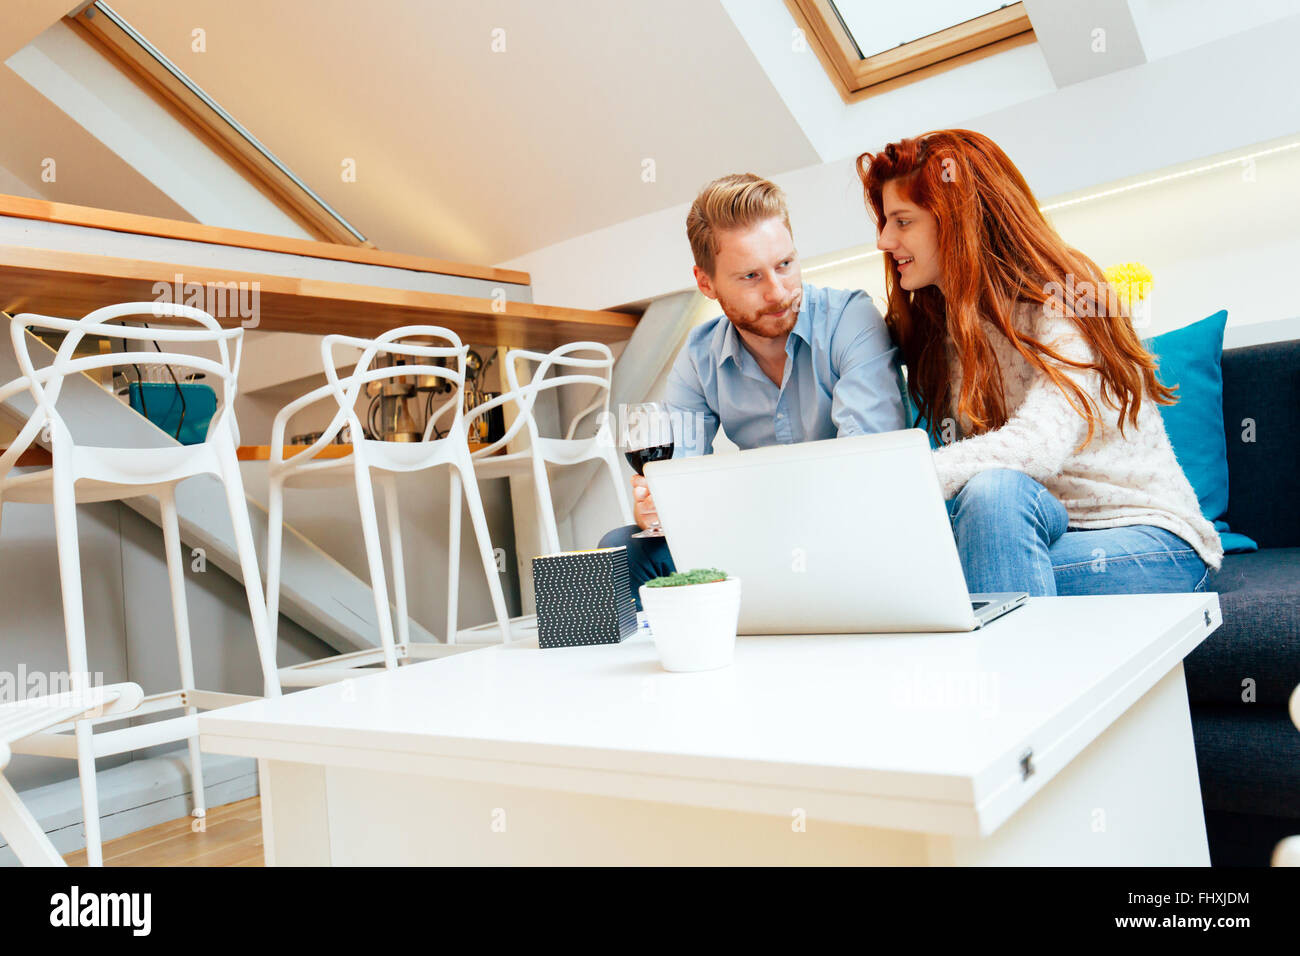 Couple surfing on internet while sitting on couch in beautiful living room - Stock Image